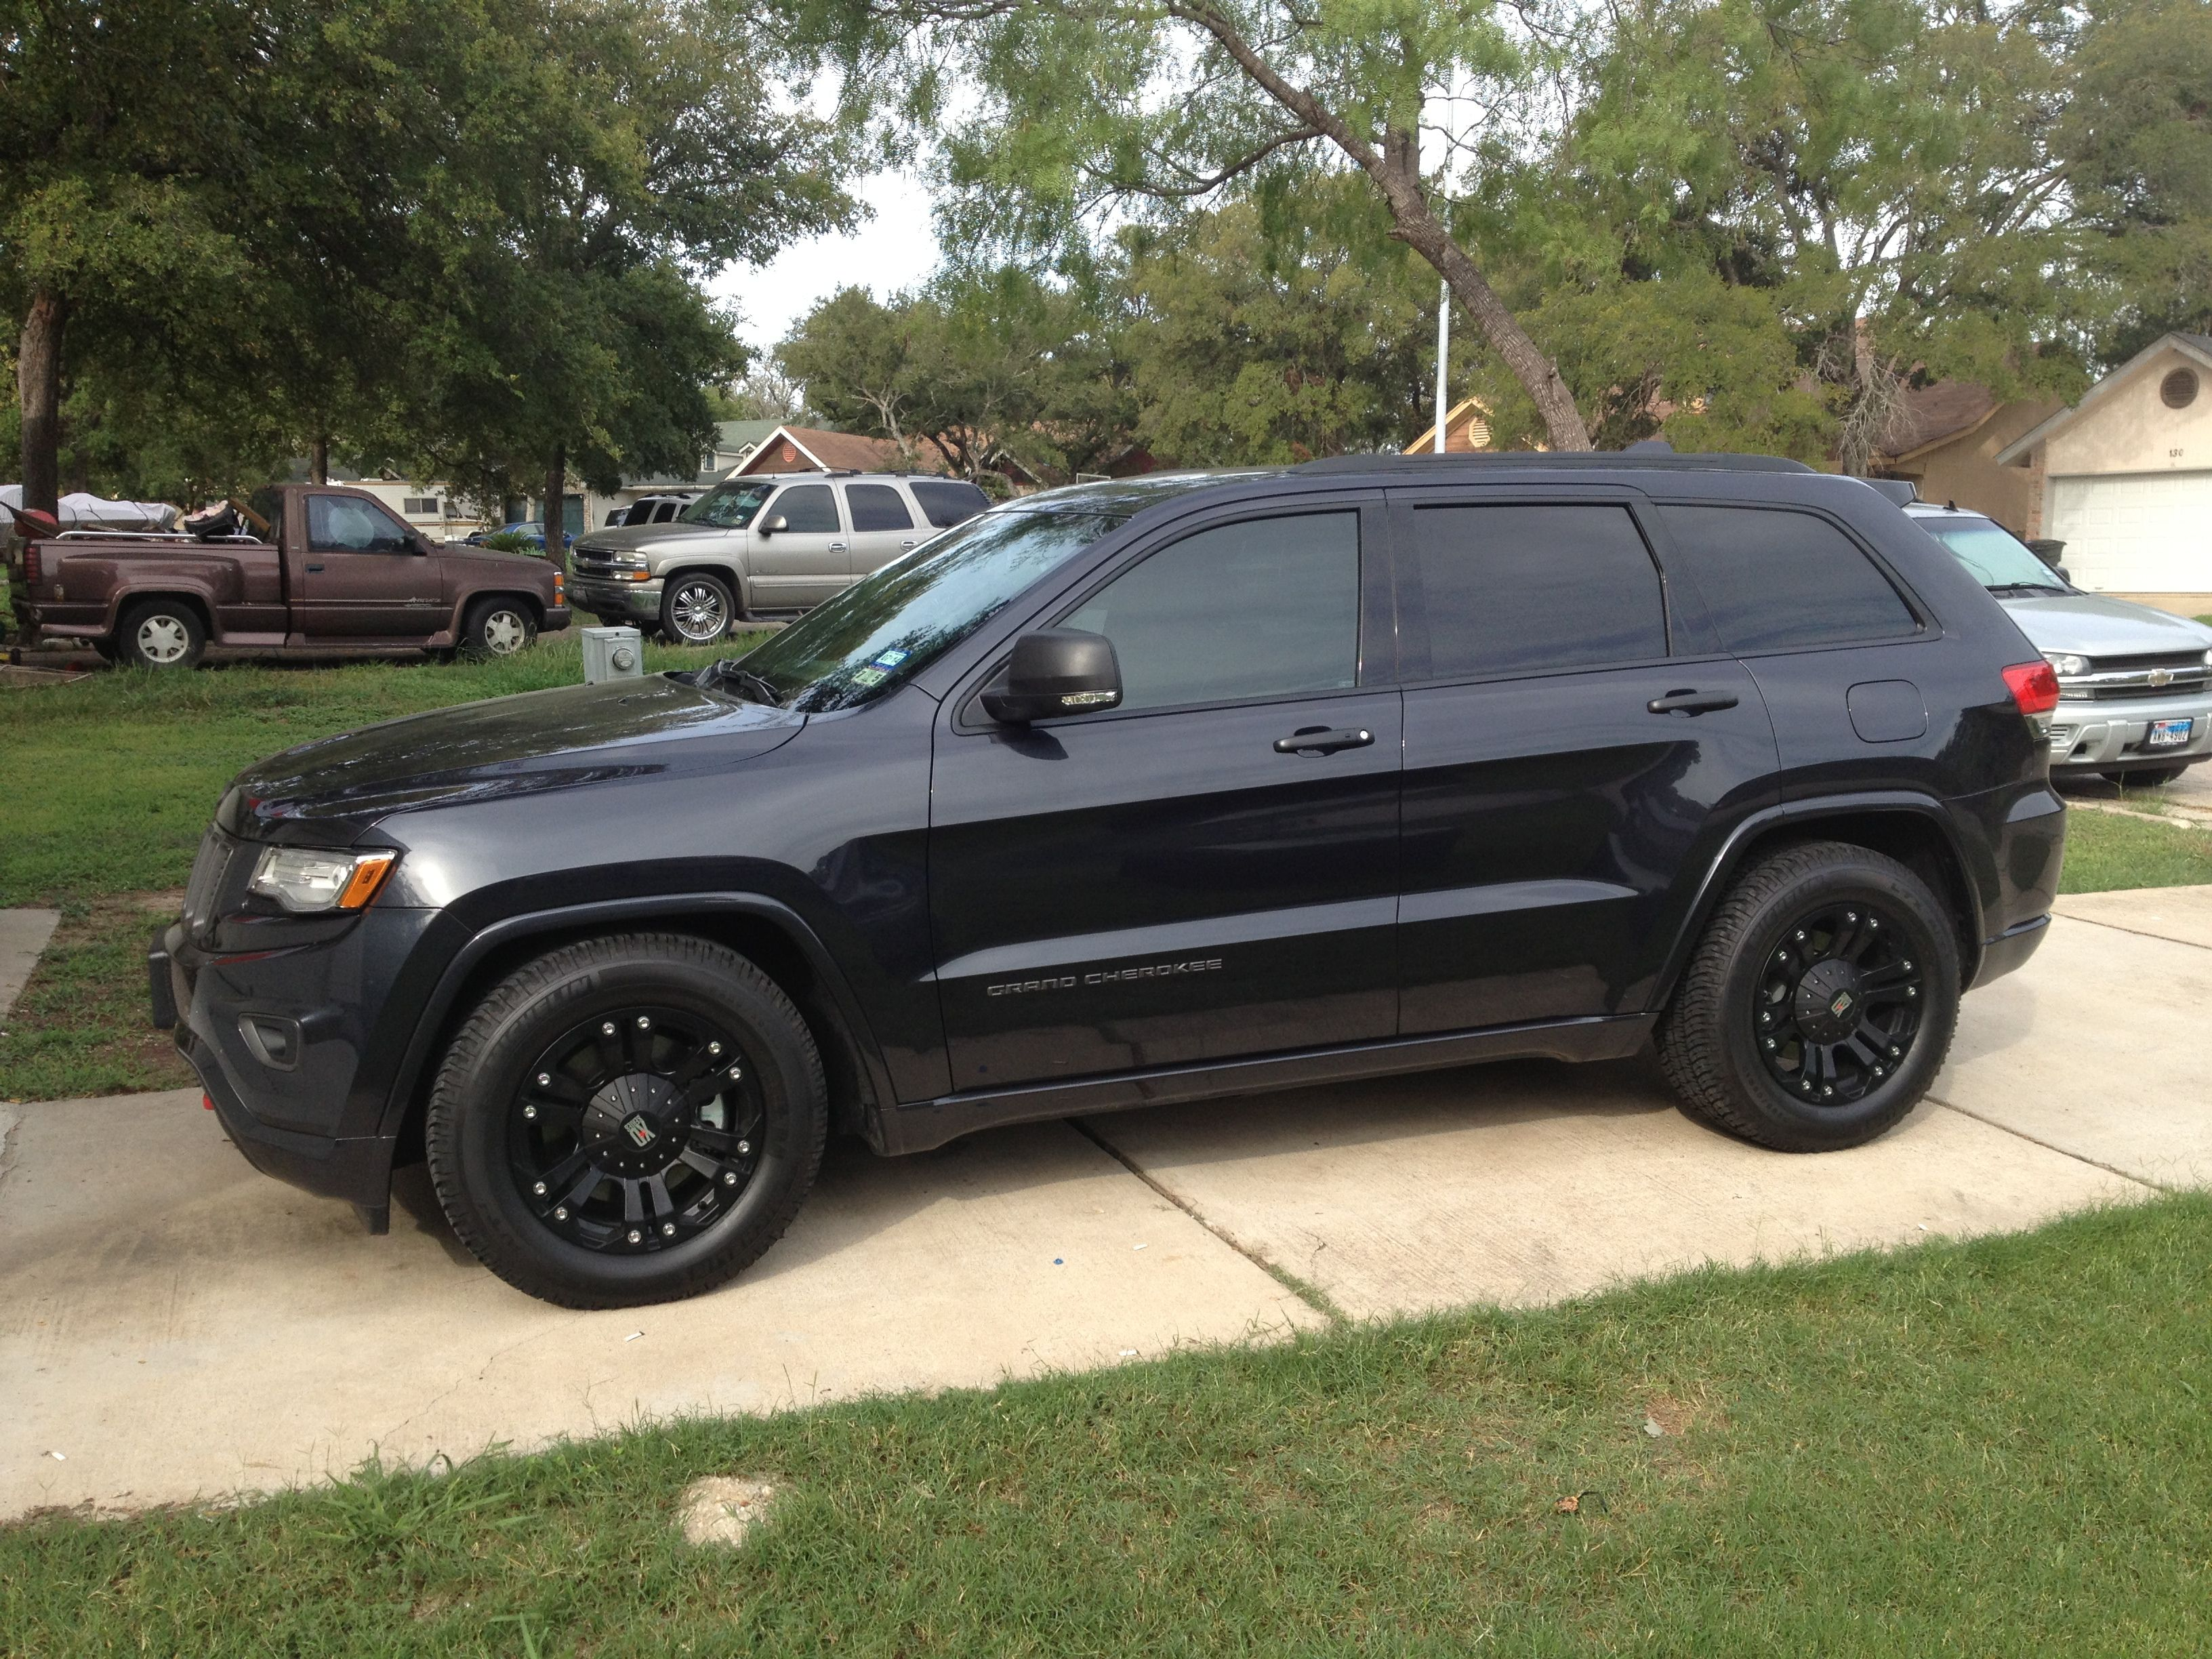 The Chrome Delete Is Complete Plasti Dip Is Awesome Car Wheels Jeep Grand Cherokee Car Wheels Diy